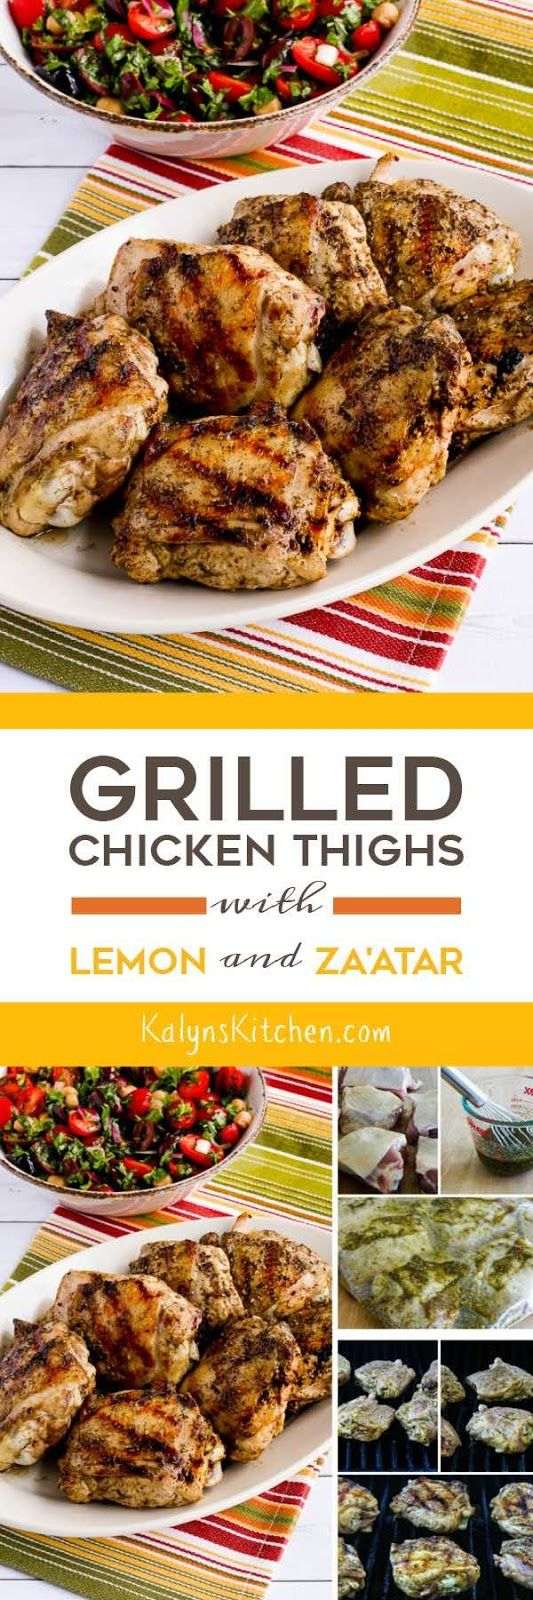 MONDAY, JUNE 20, 2016  Grilled Chicken Thighs with Lemon and Za'atar are perfect for an easy summer dinner, and this tasty grilled chicken is low-carb, Keto, low-glycemic, gluten-free, South Beach Diet friendly, dairy-free, Paleo, and Whole 30 approved. [found on KalynsKitchen.com]